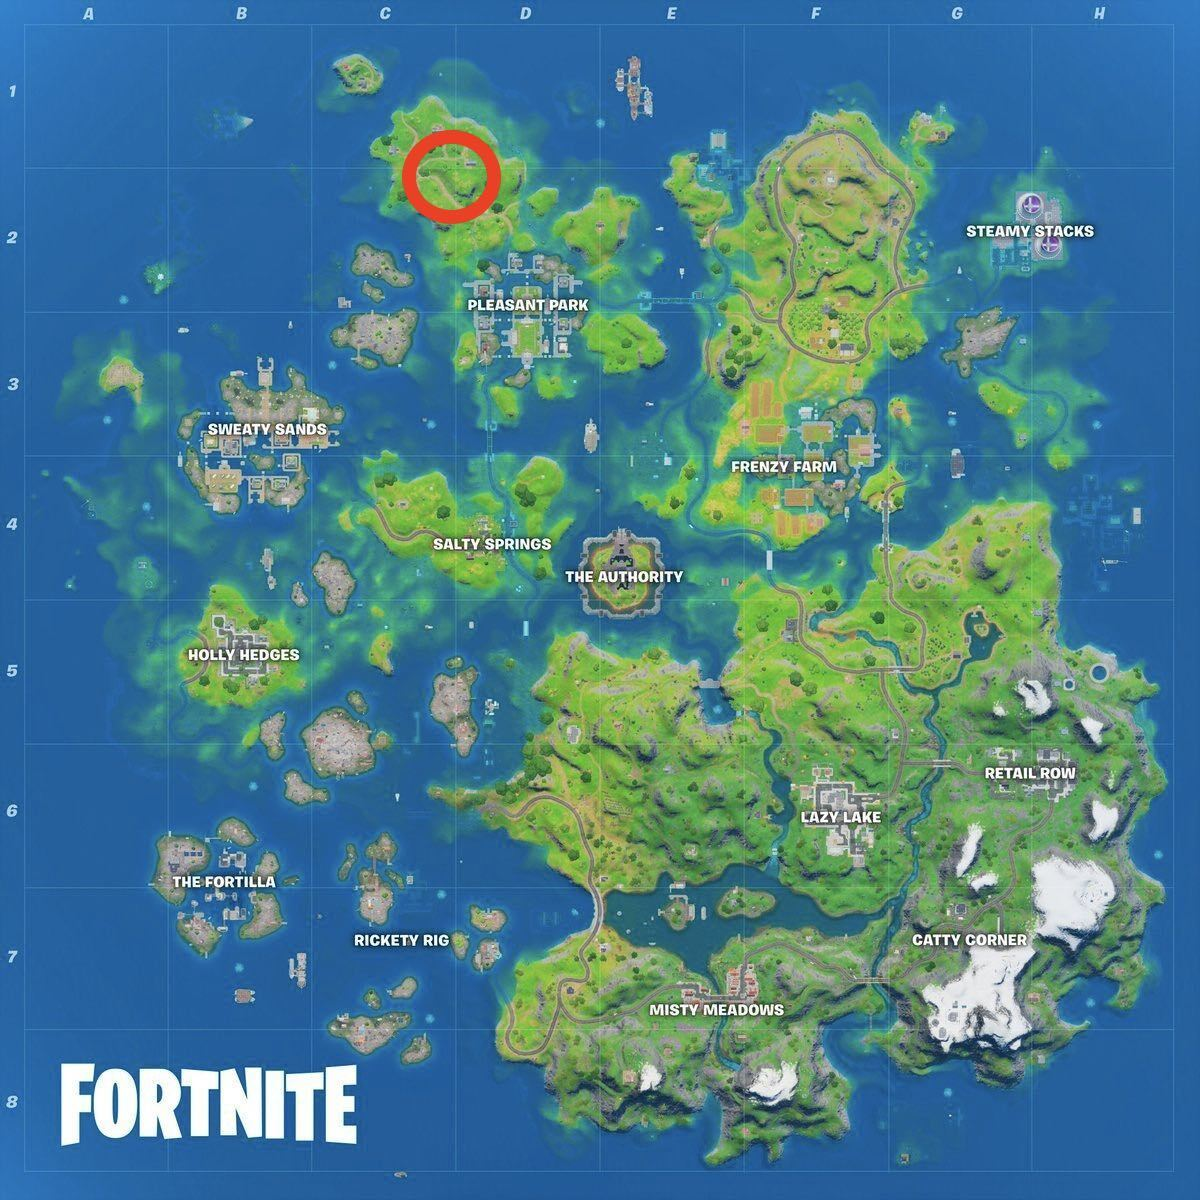 Homely Hills location on Fortnite's new Season 3 map